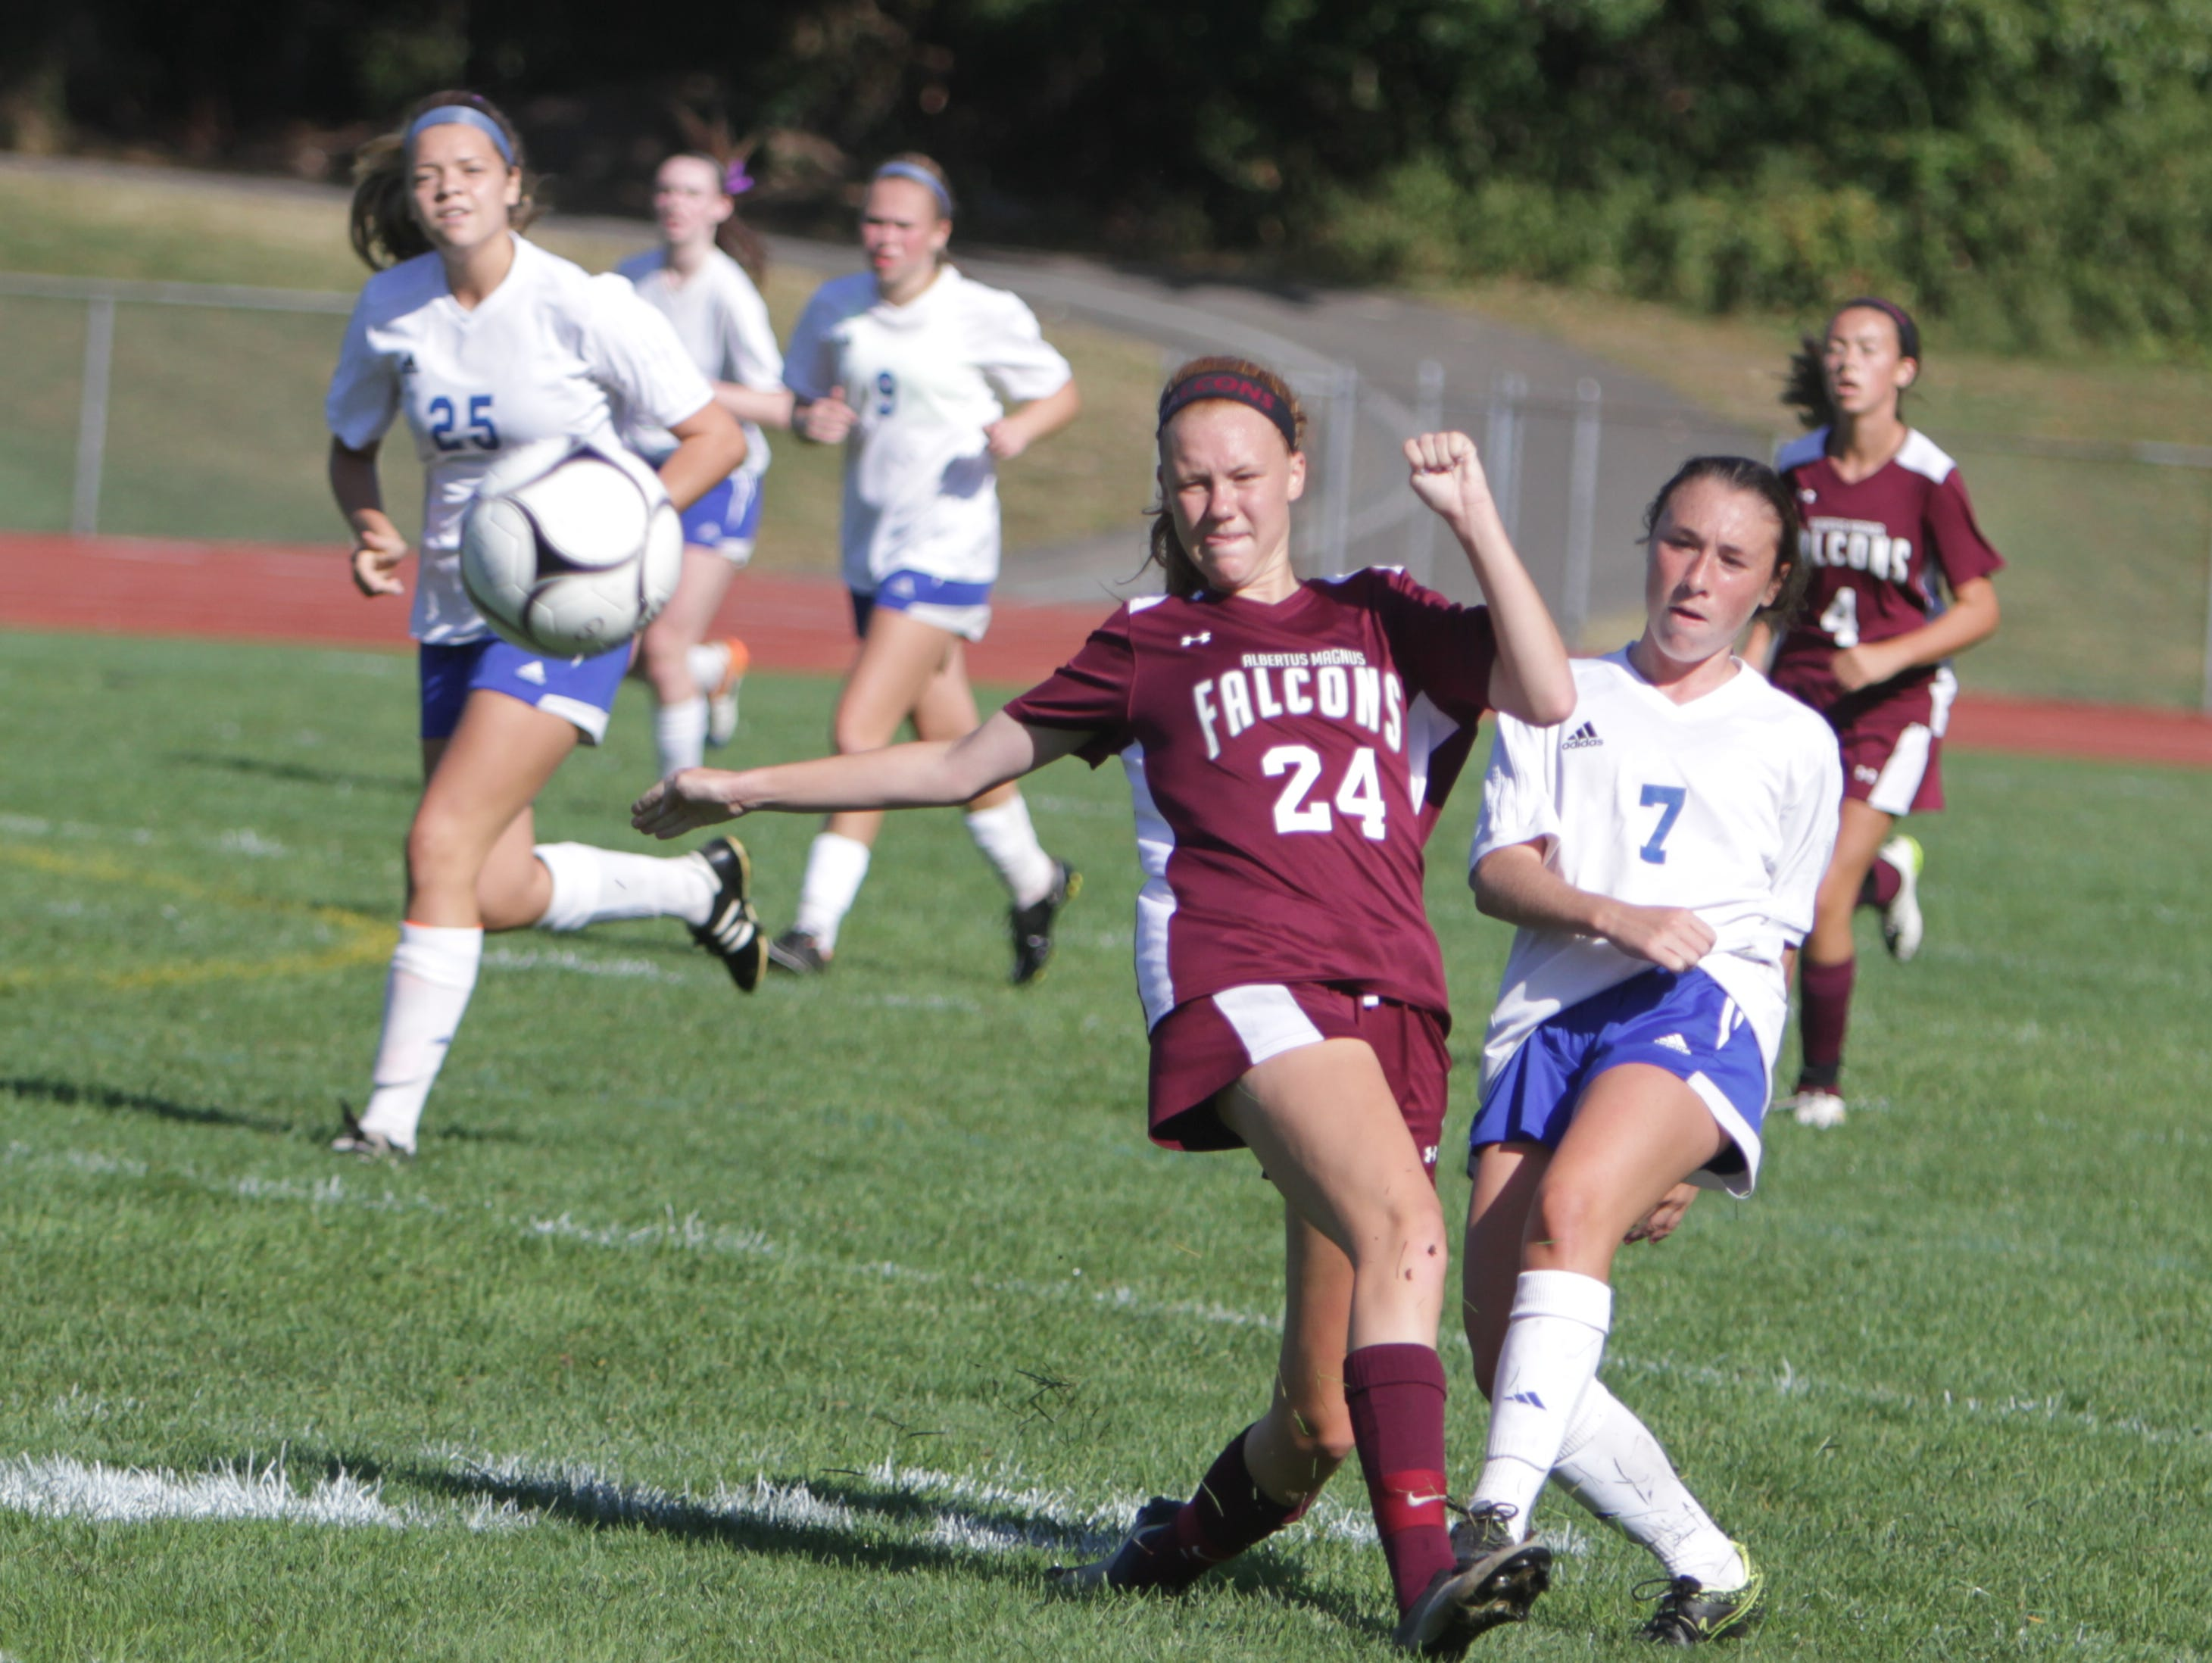 Pearl River slipped to No. 8 in this week's rankings following a 0-0 tie with Albertus Magnus.